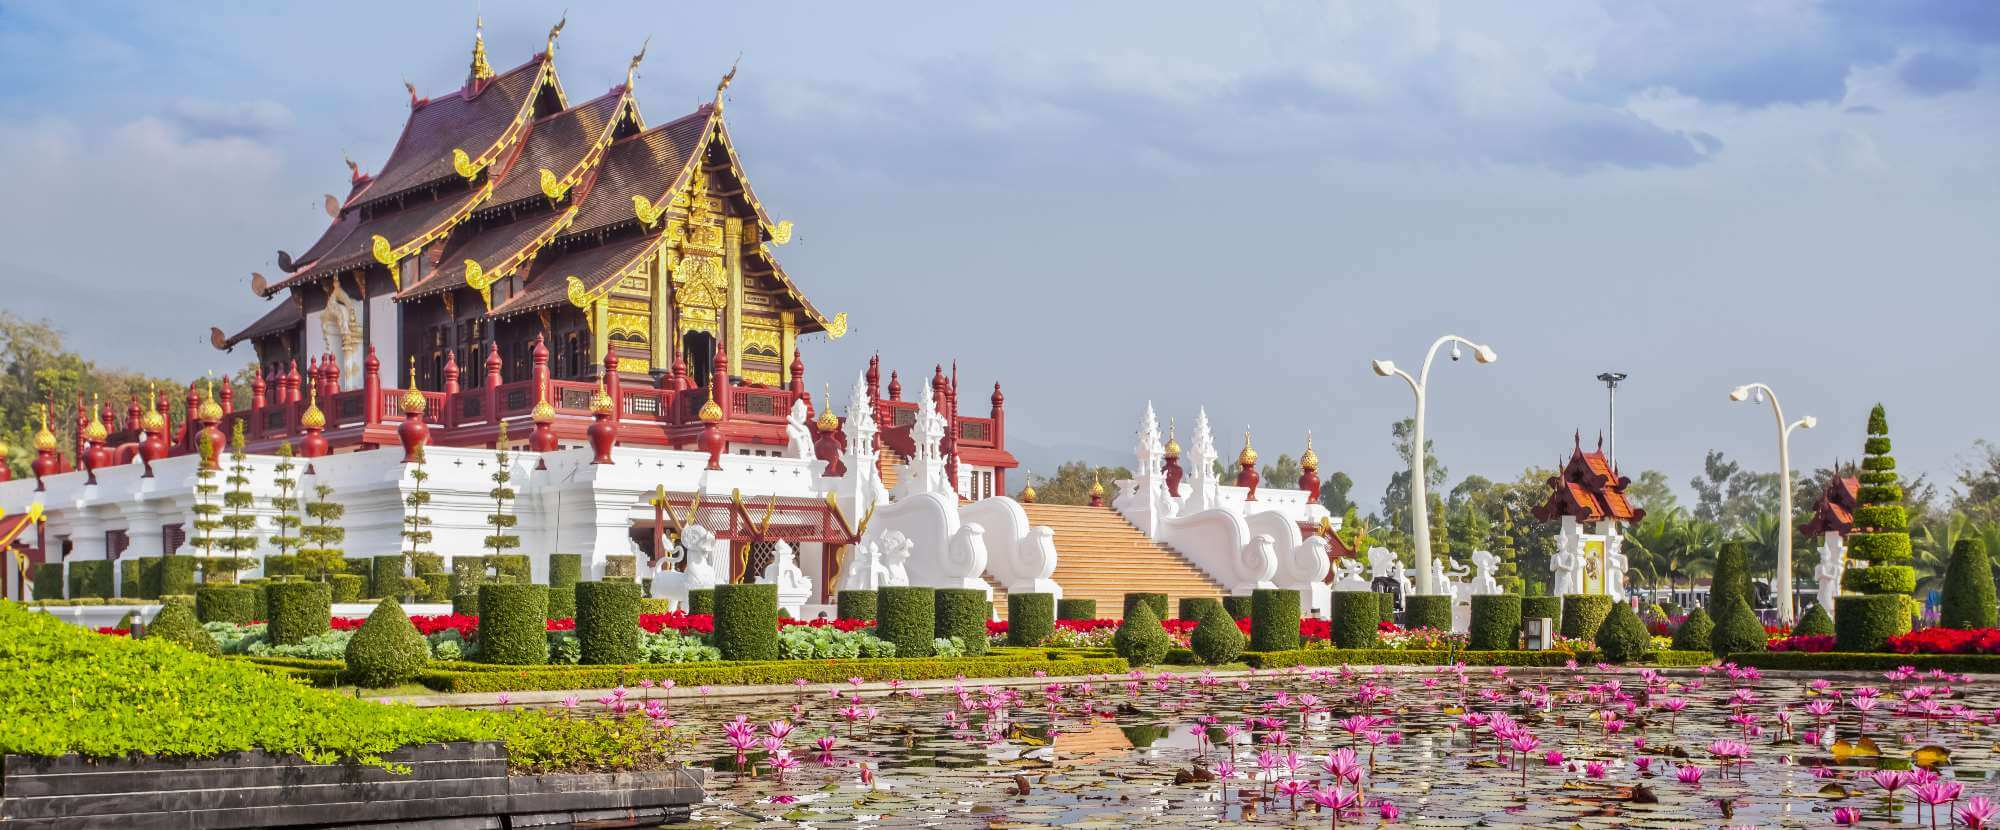 19 Incredible Landmarks in Thailand You Don't Want to Miss